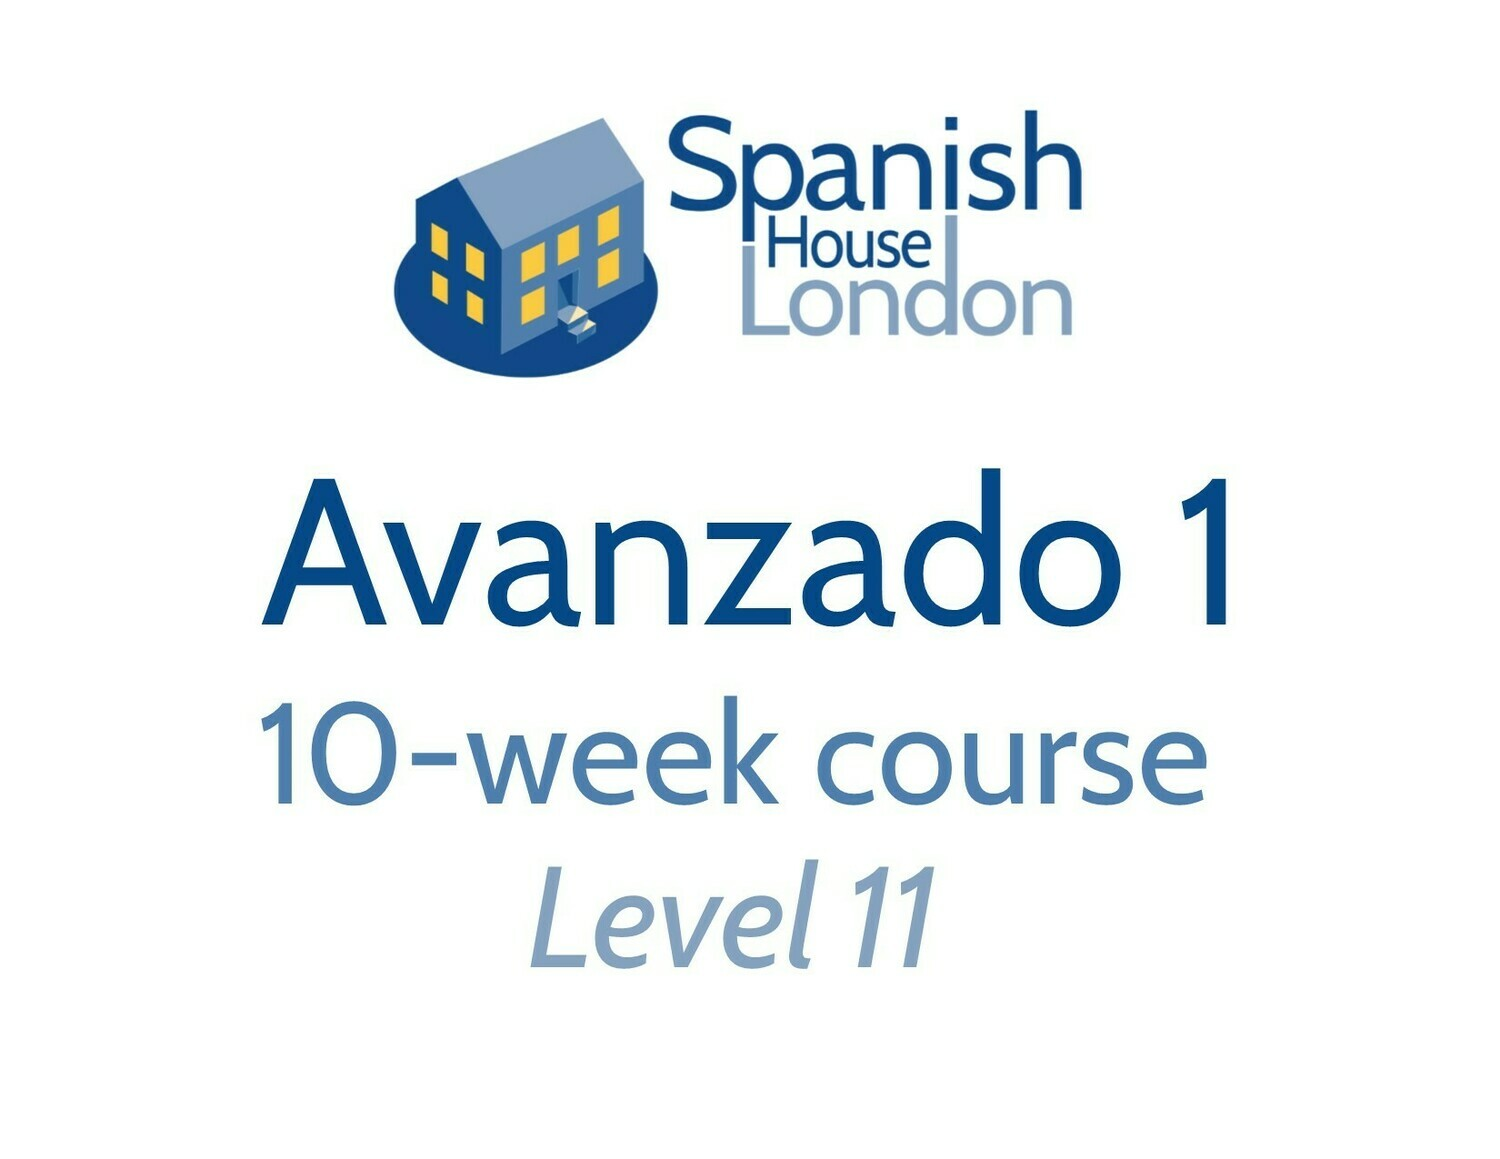 Avanzado 1 Course starting on 5th October at 6pm